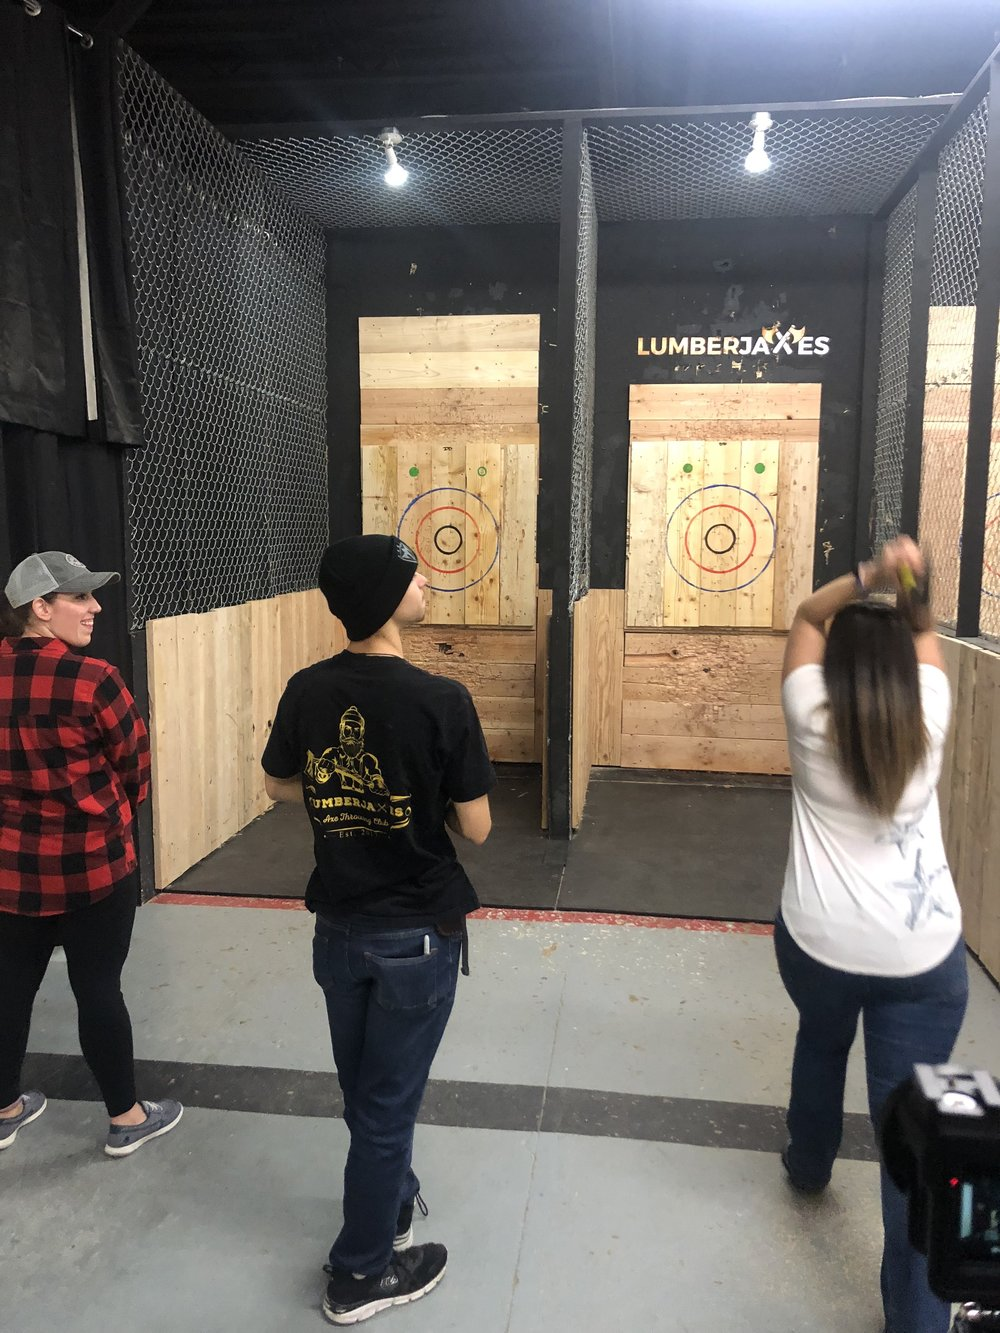 Lumberjaxes Axe Throwing